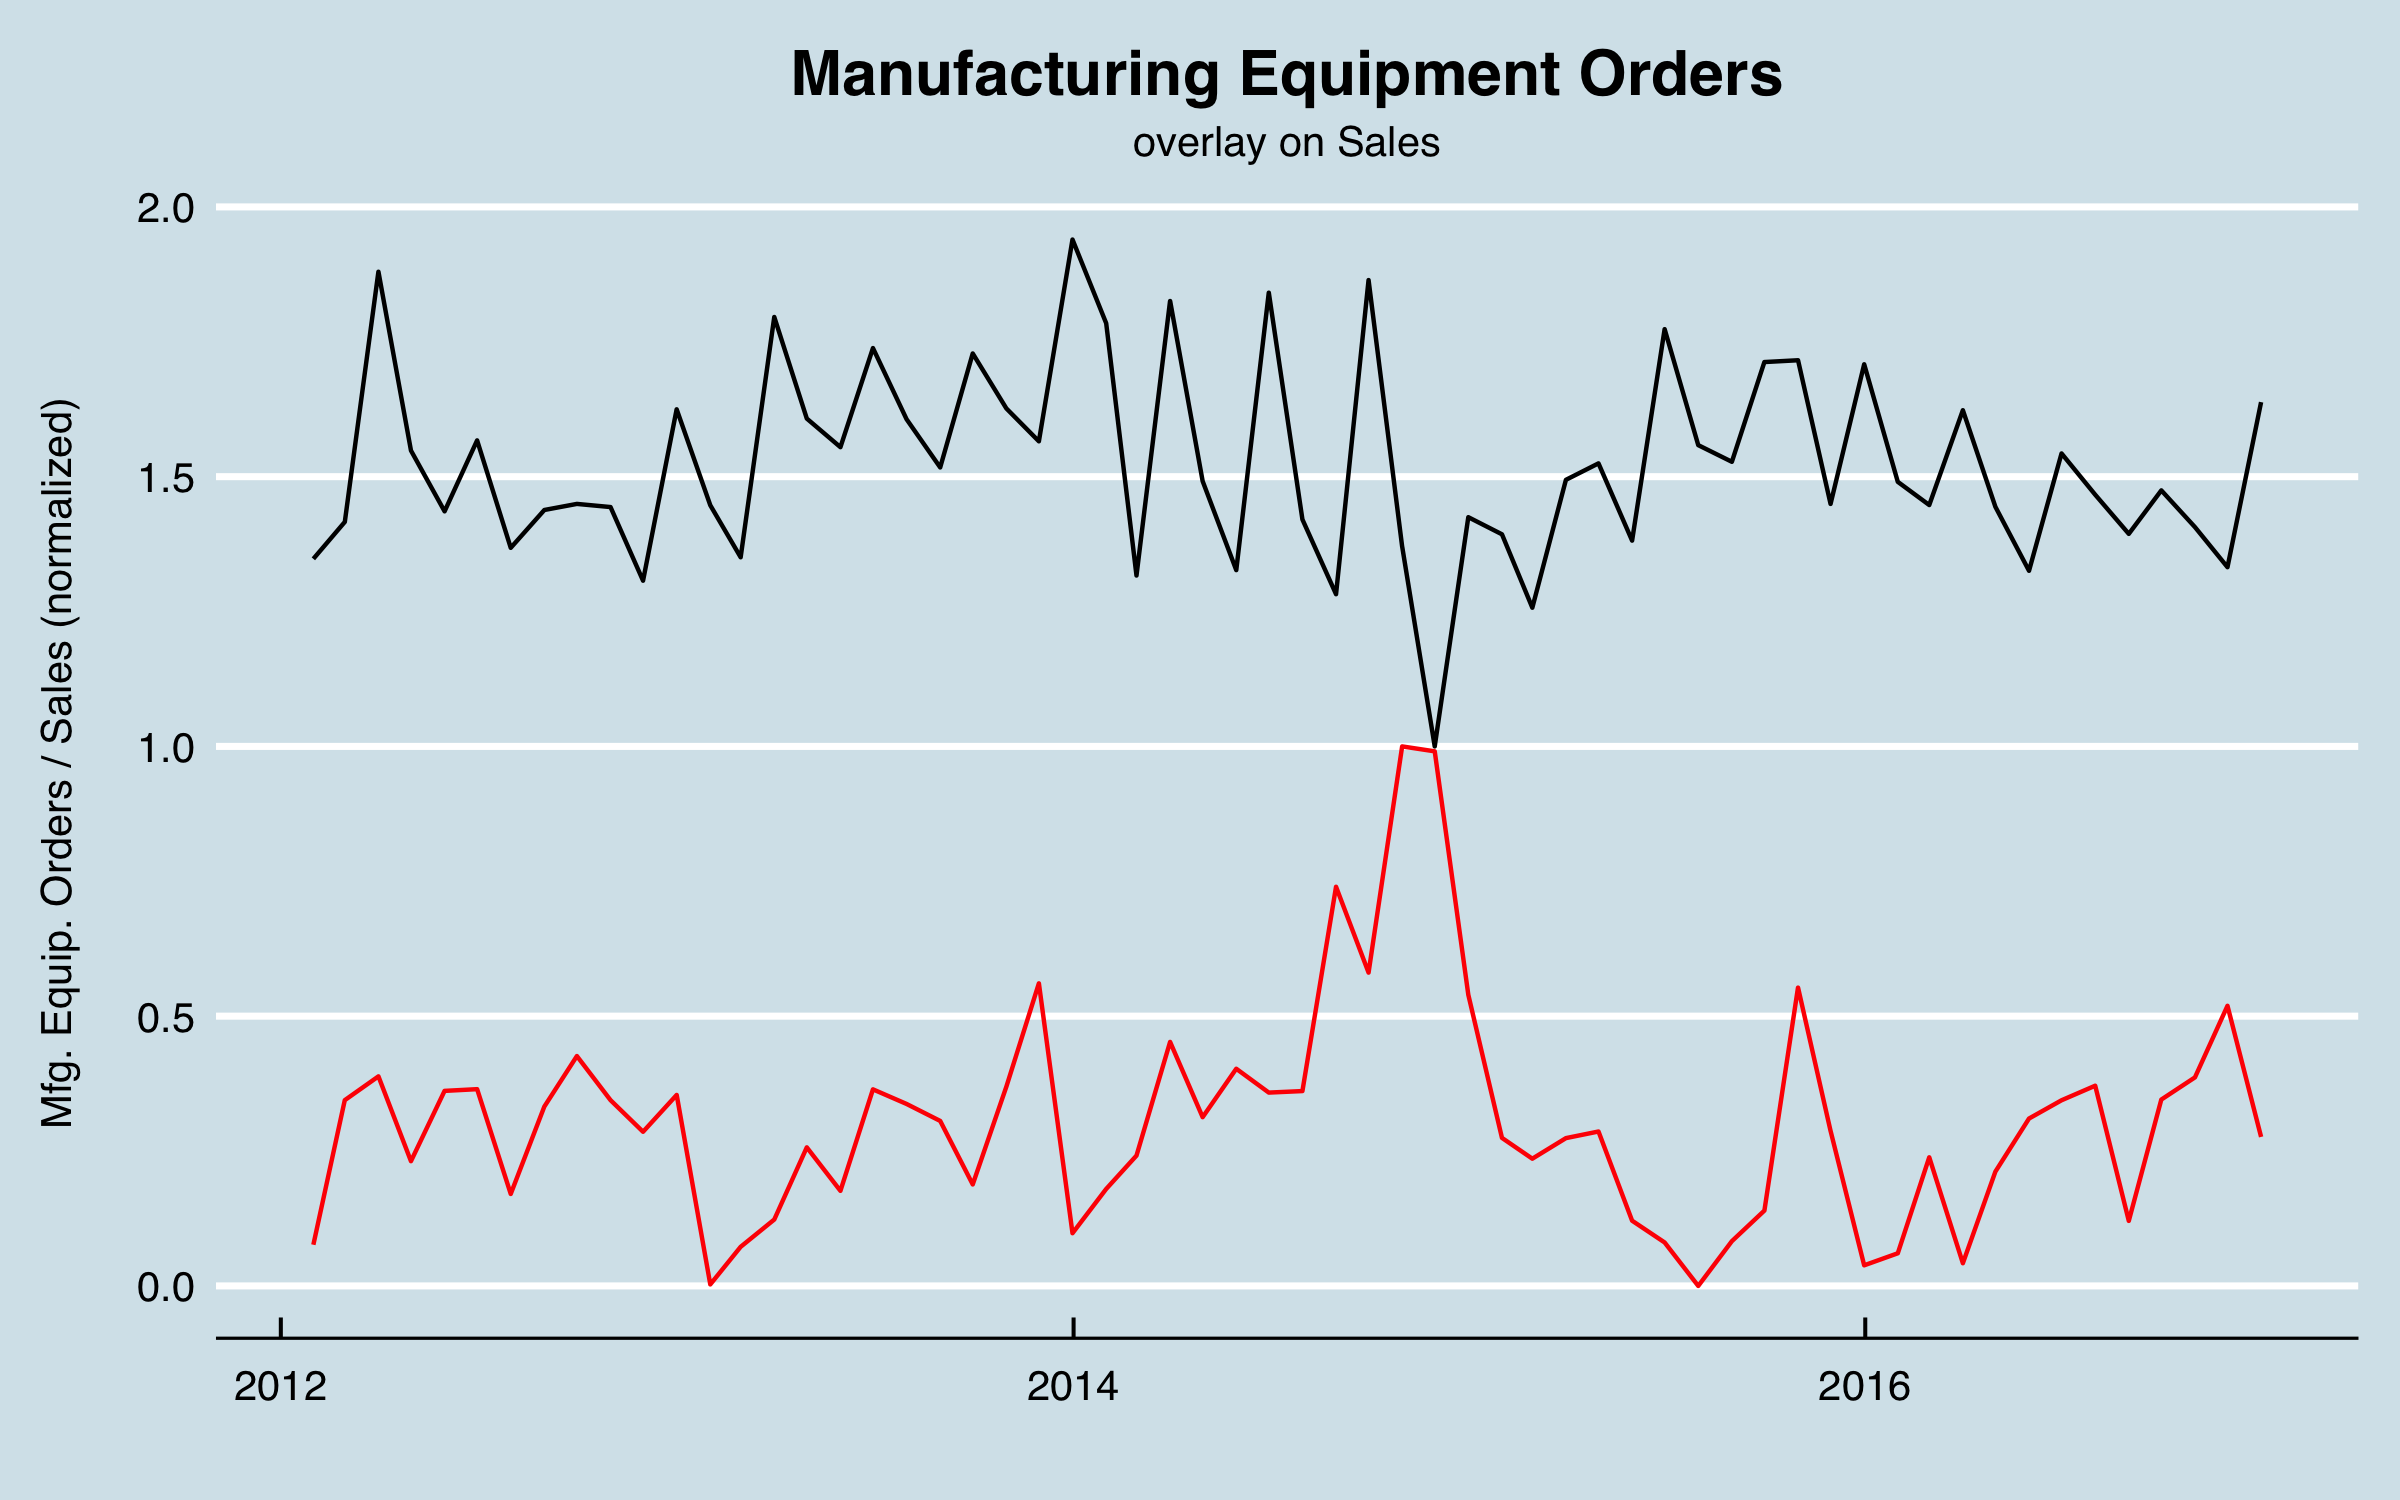 plot of chunk Mfg. Equip. Orders